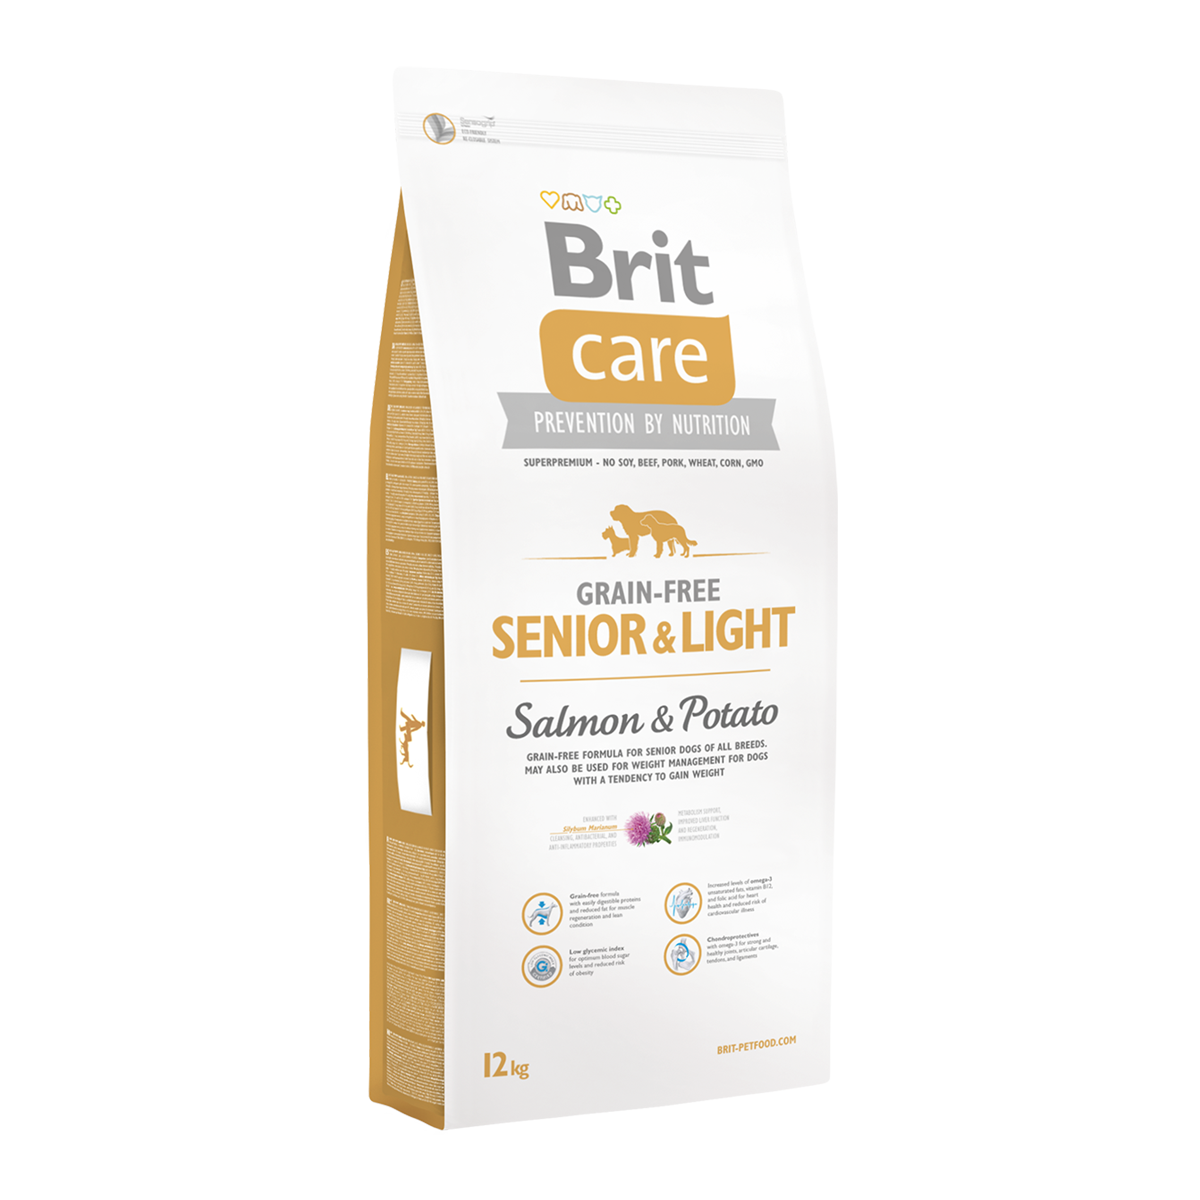 Корм для собак Brit Care Grain-free Senior & Light  Salmon & Potato, 12 кг